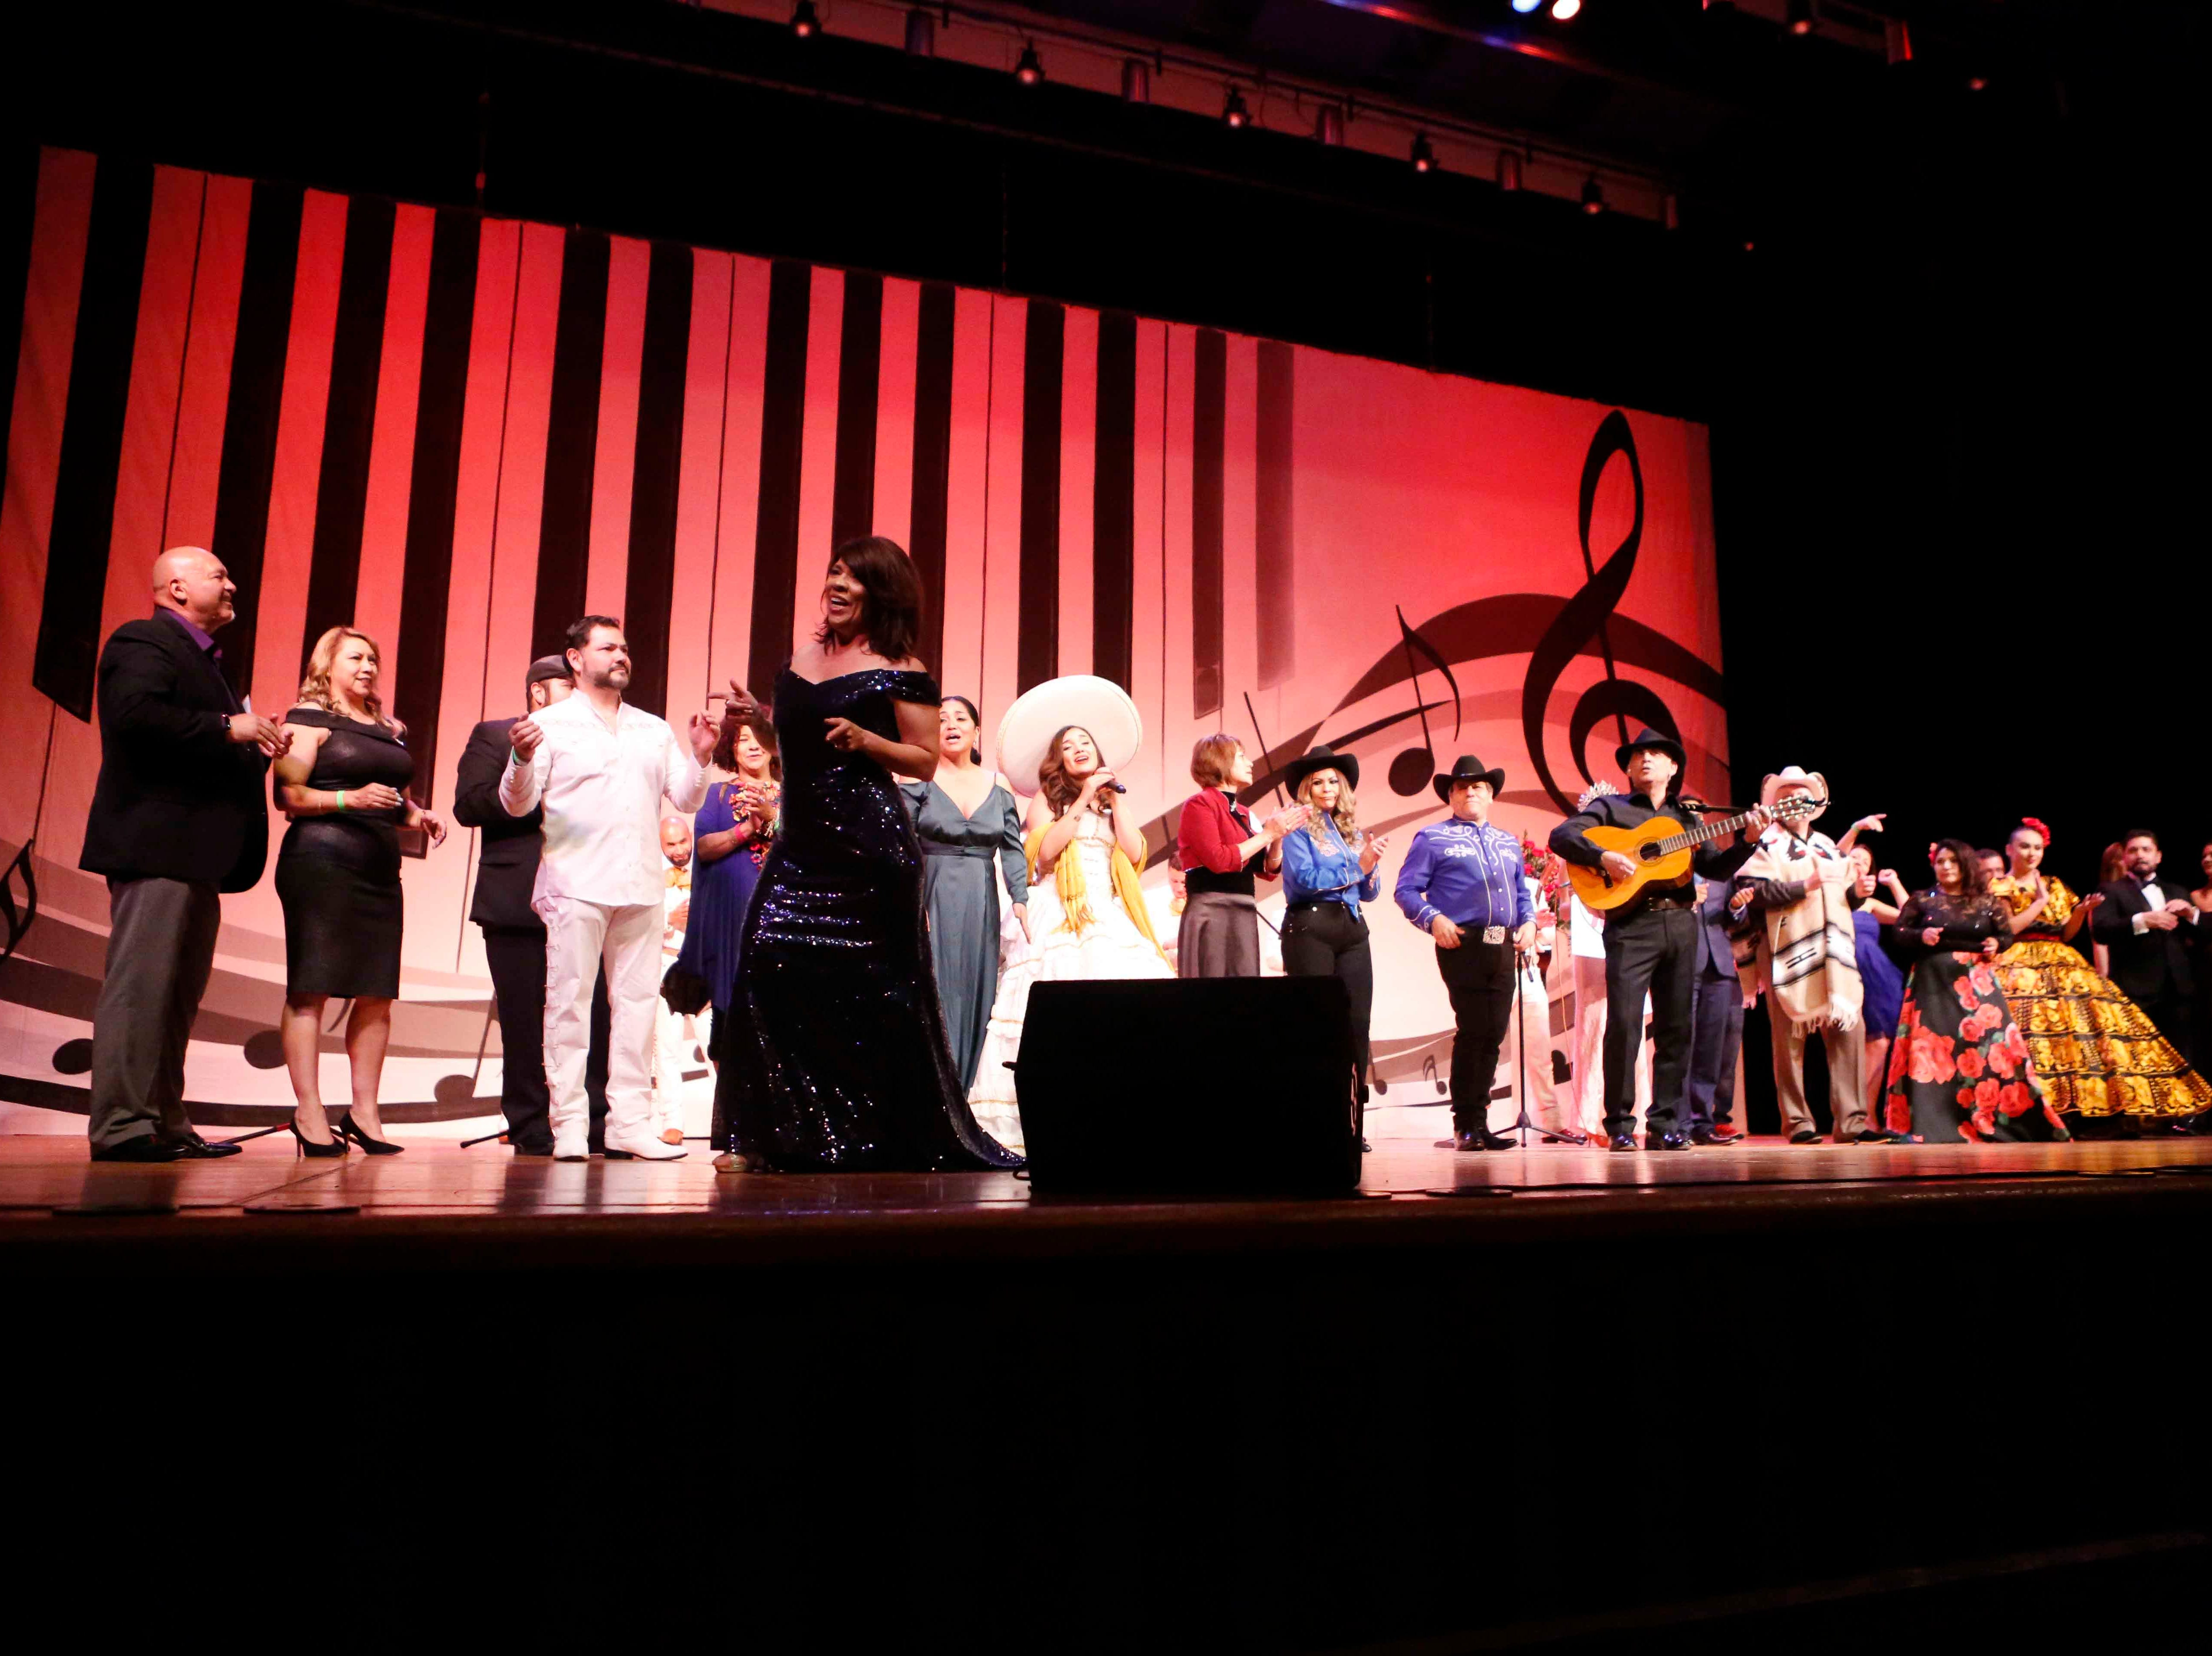 All the performers on stage as the12th annual Noche Bohemia concludes at Sherwood Hall on Saturday, April 27, 2019 in Salinas, Calif.